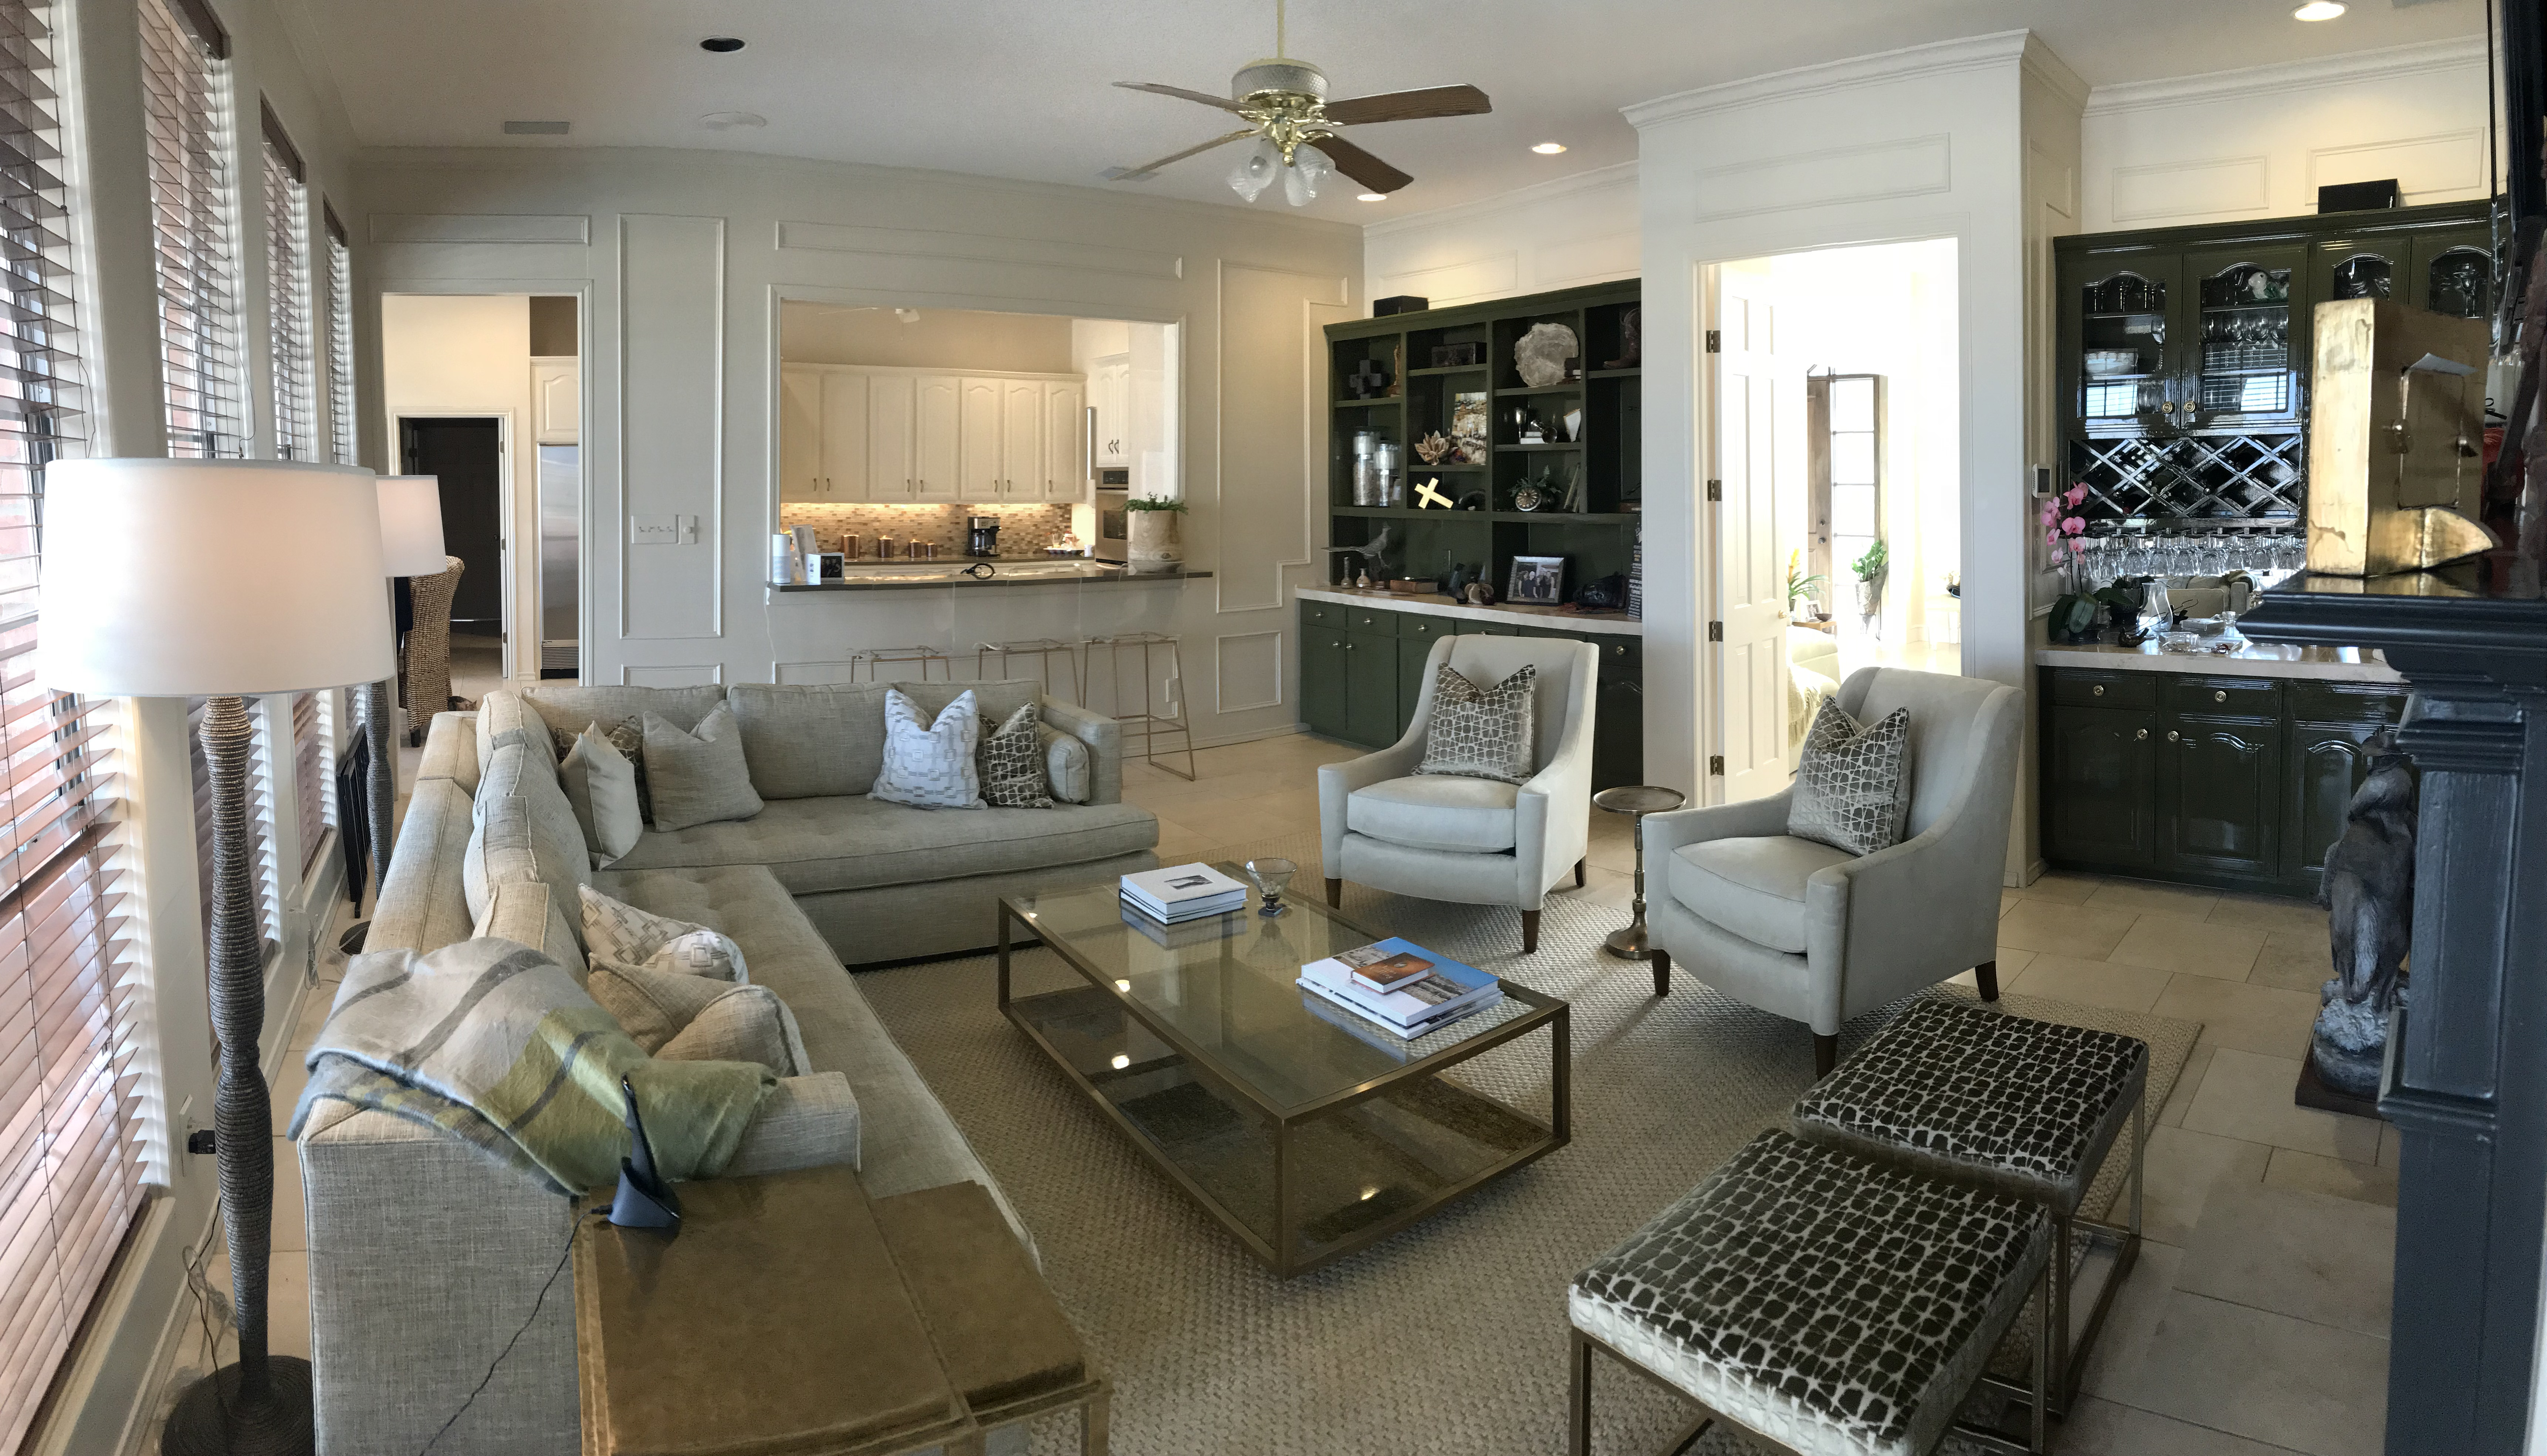 Living Room Ideas - The finished Look